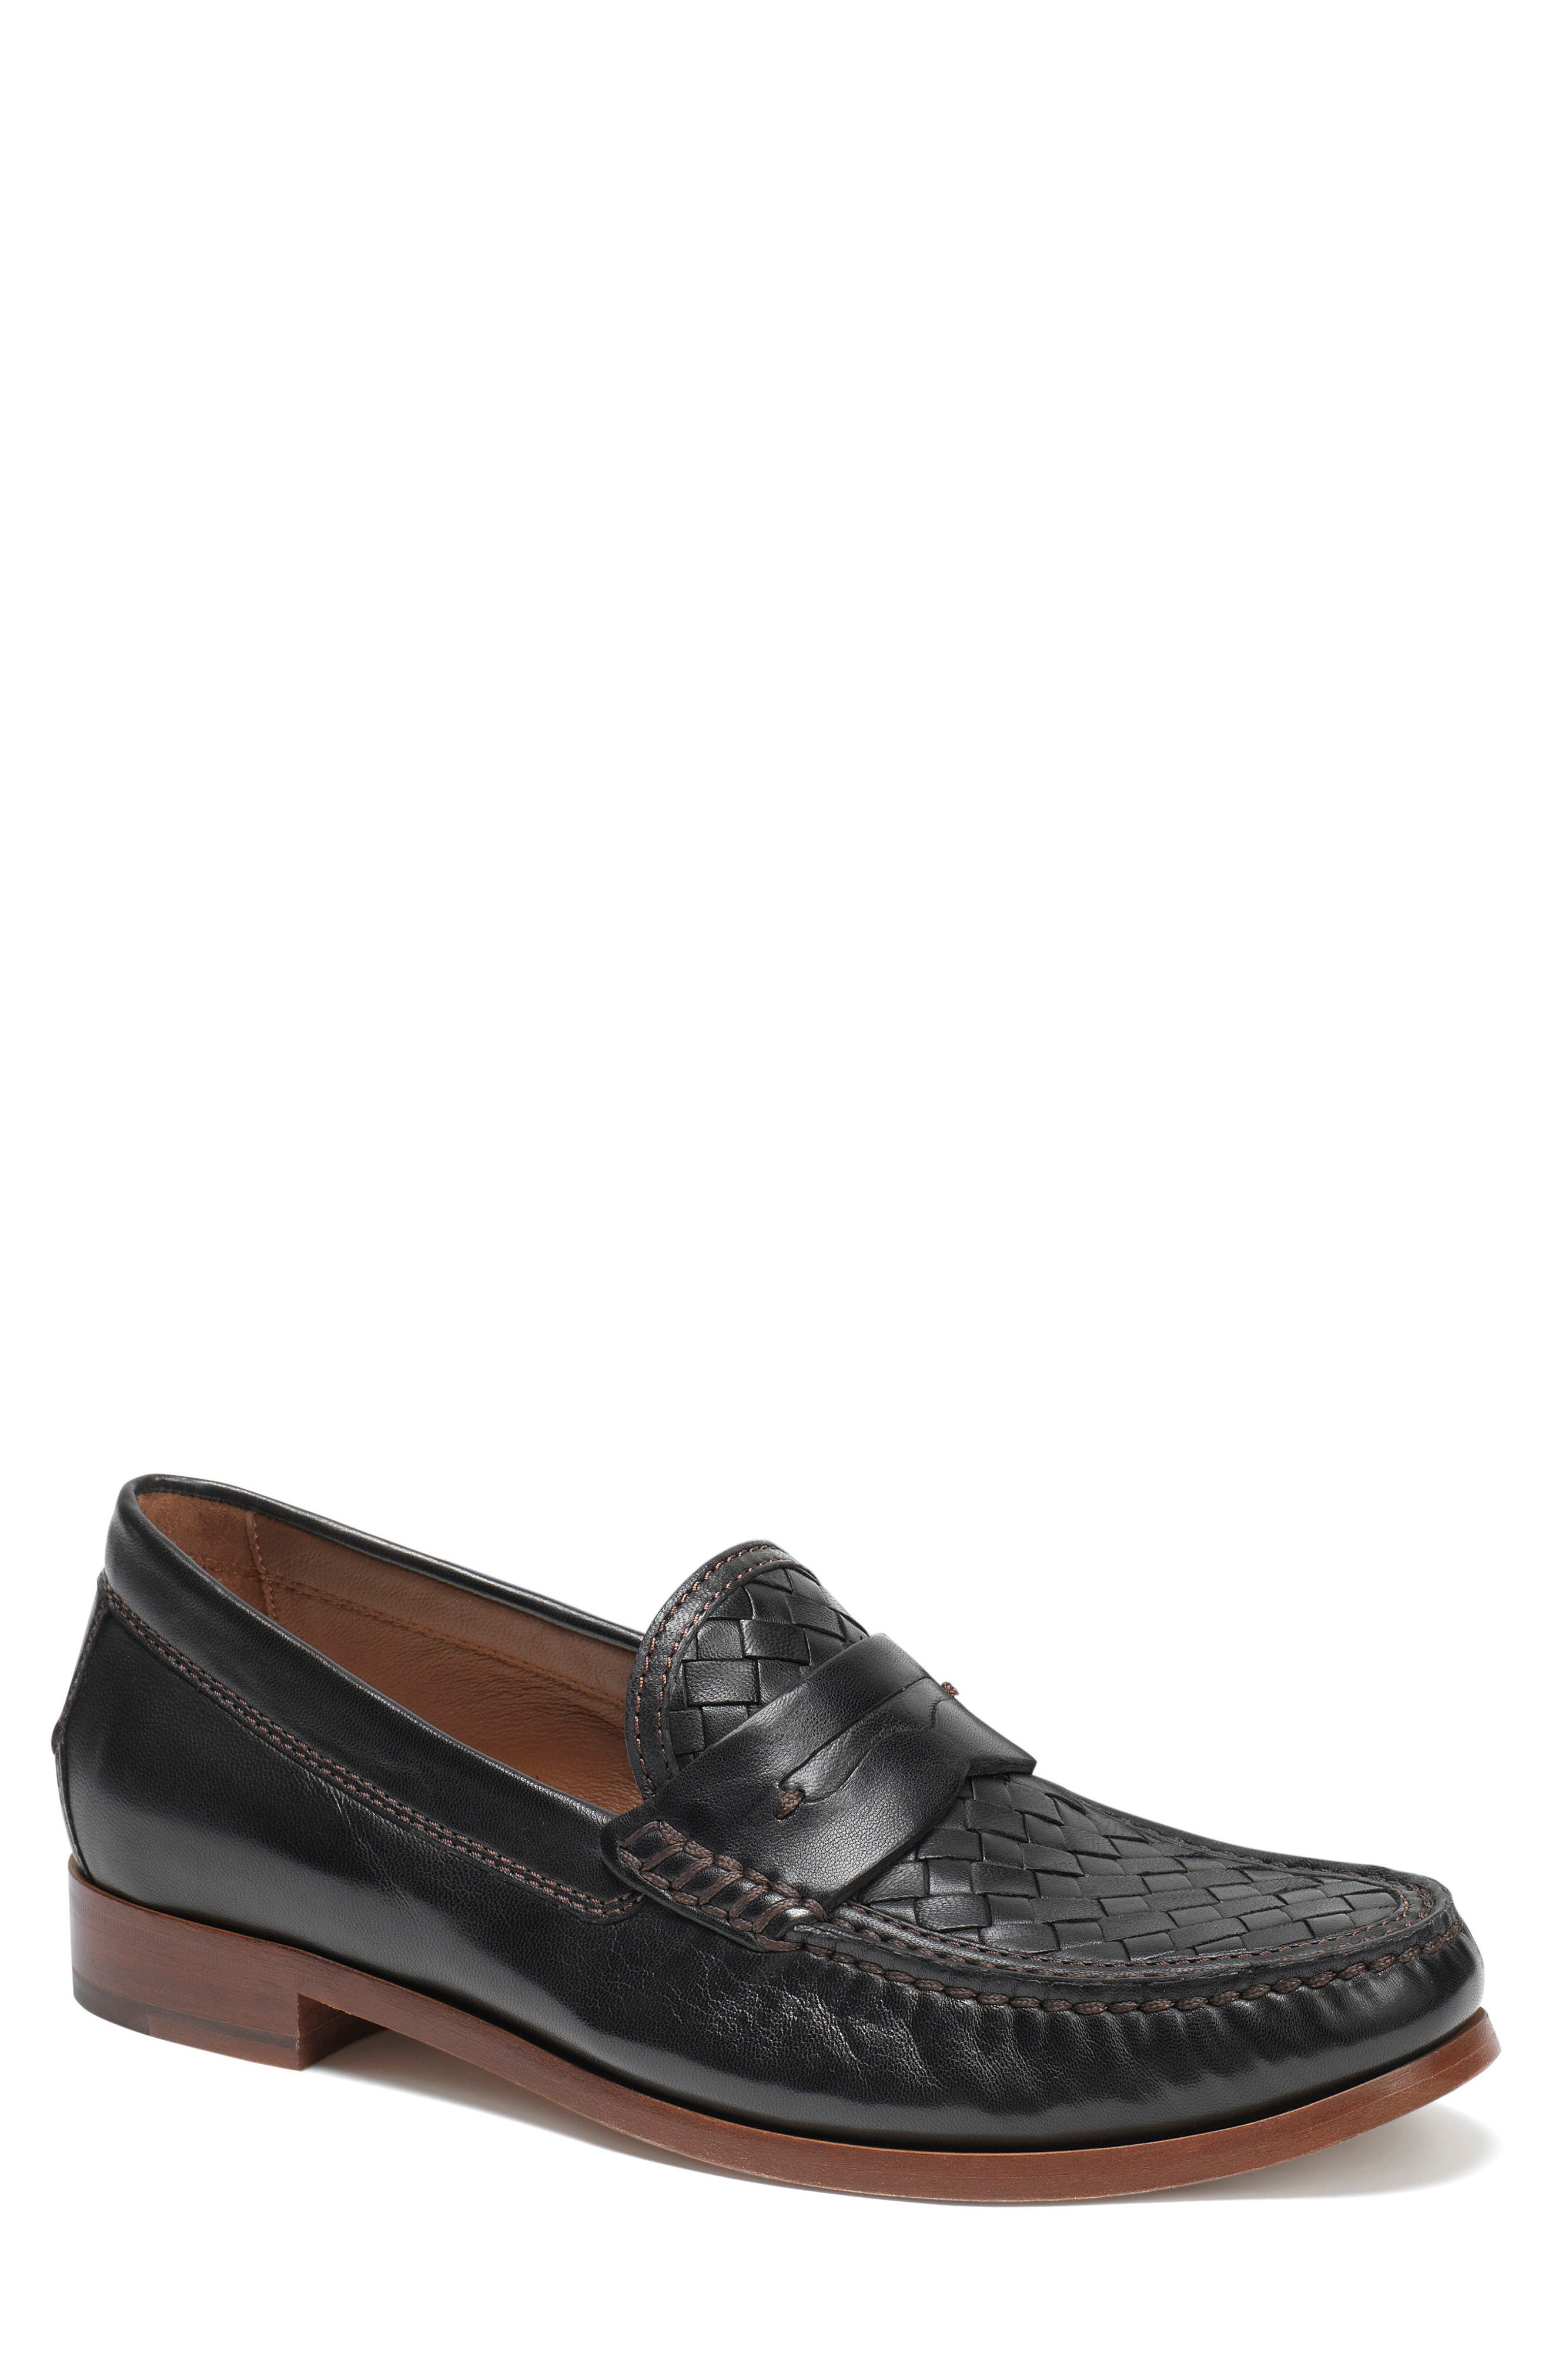 Image of Trask Slade Woven Penny Loafer